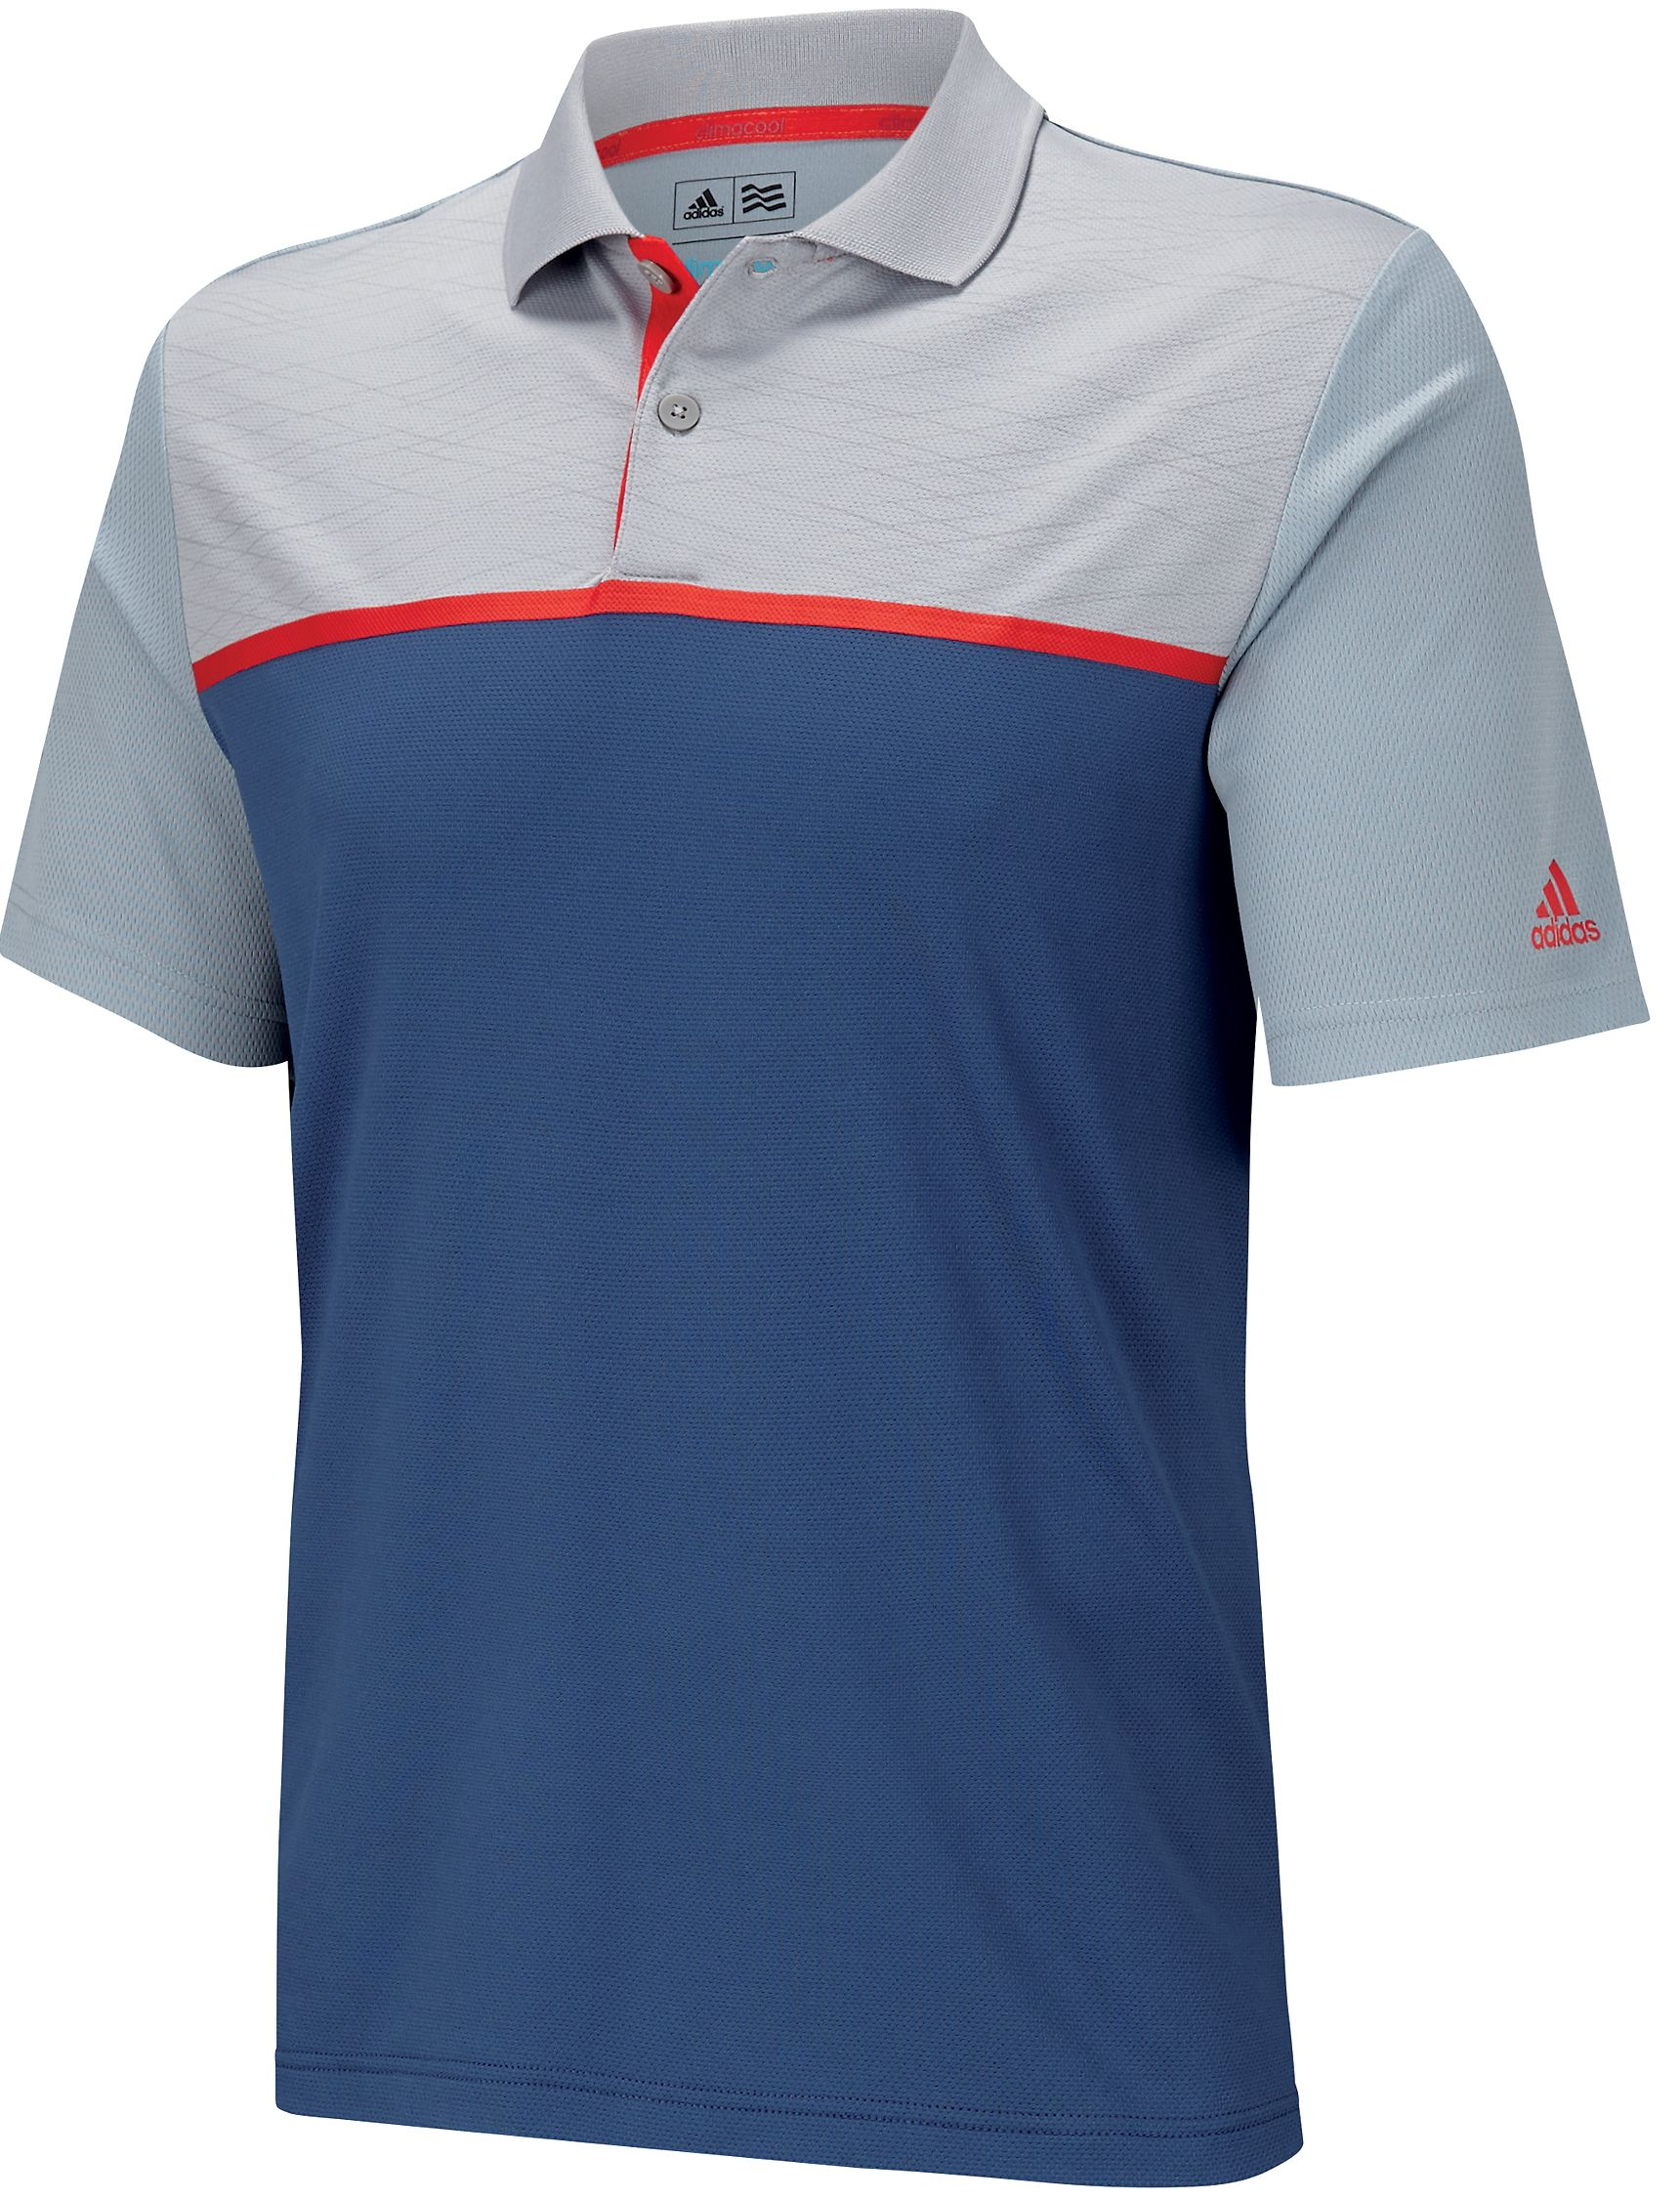 adidas polo shirts for men